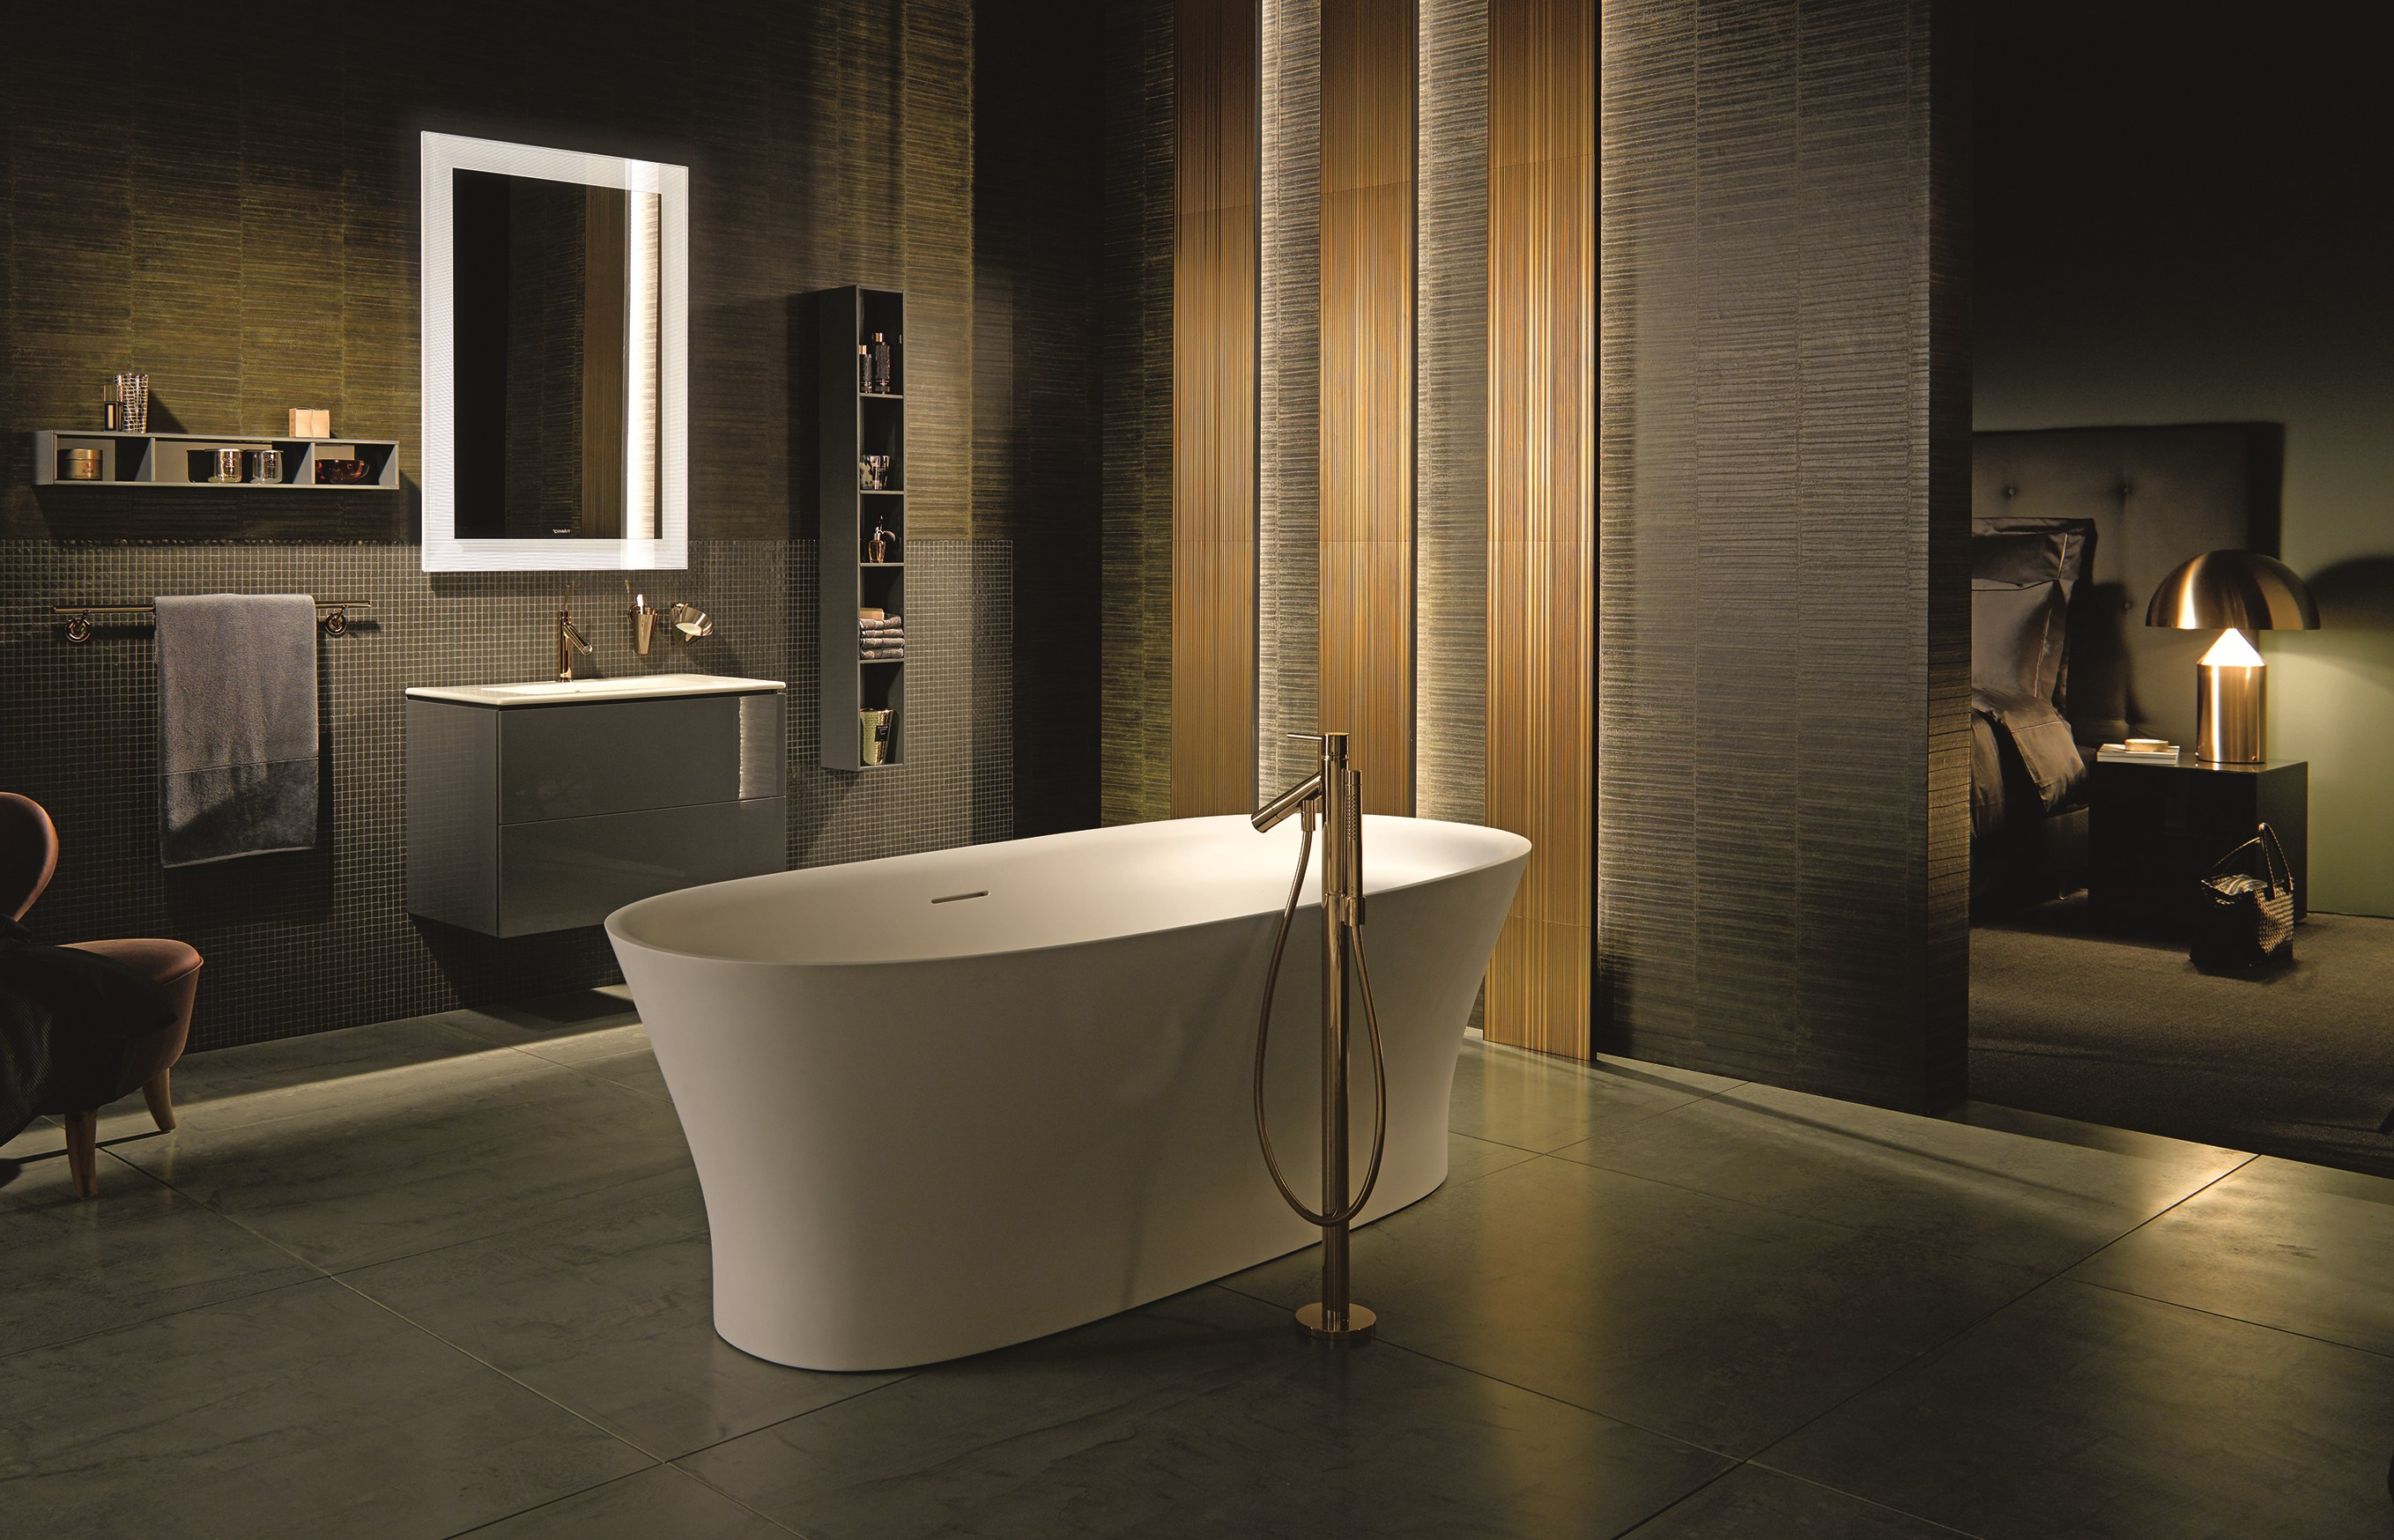 huge variety of duravit baths fountaindirect. Black Bedroom Furniture Sets. Home Design Ideas